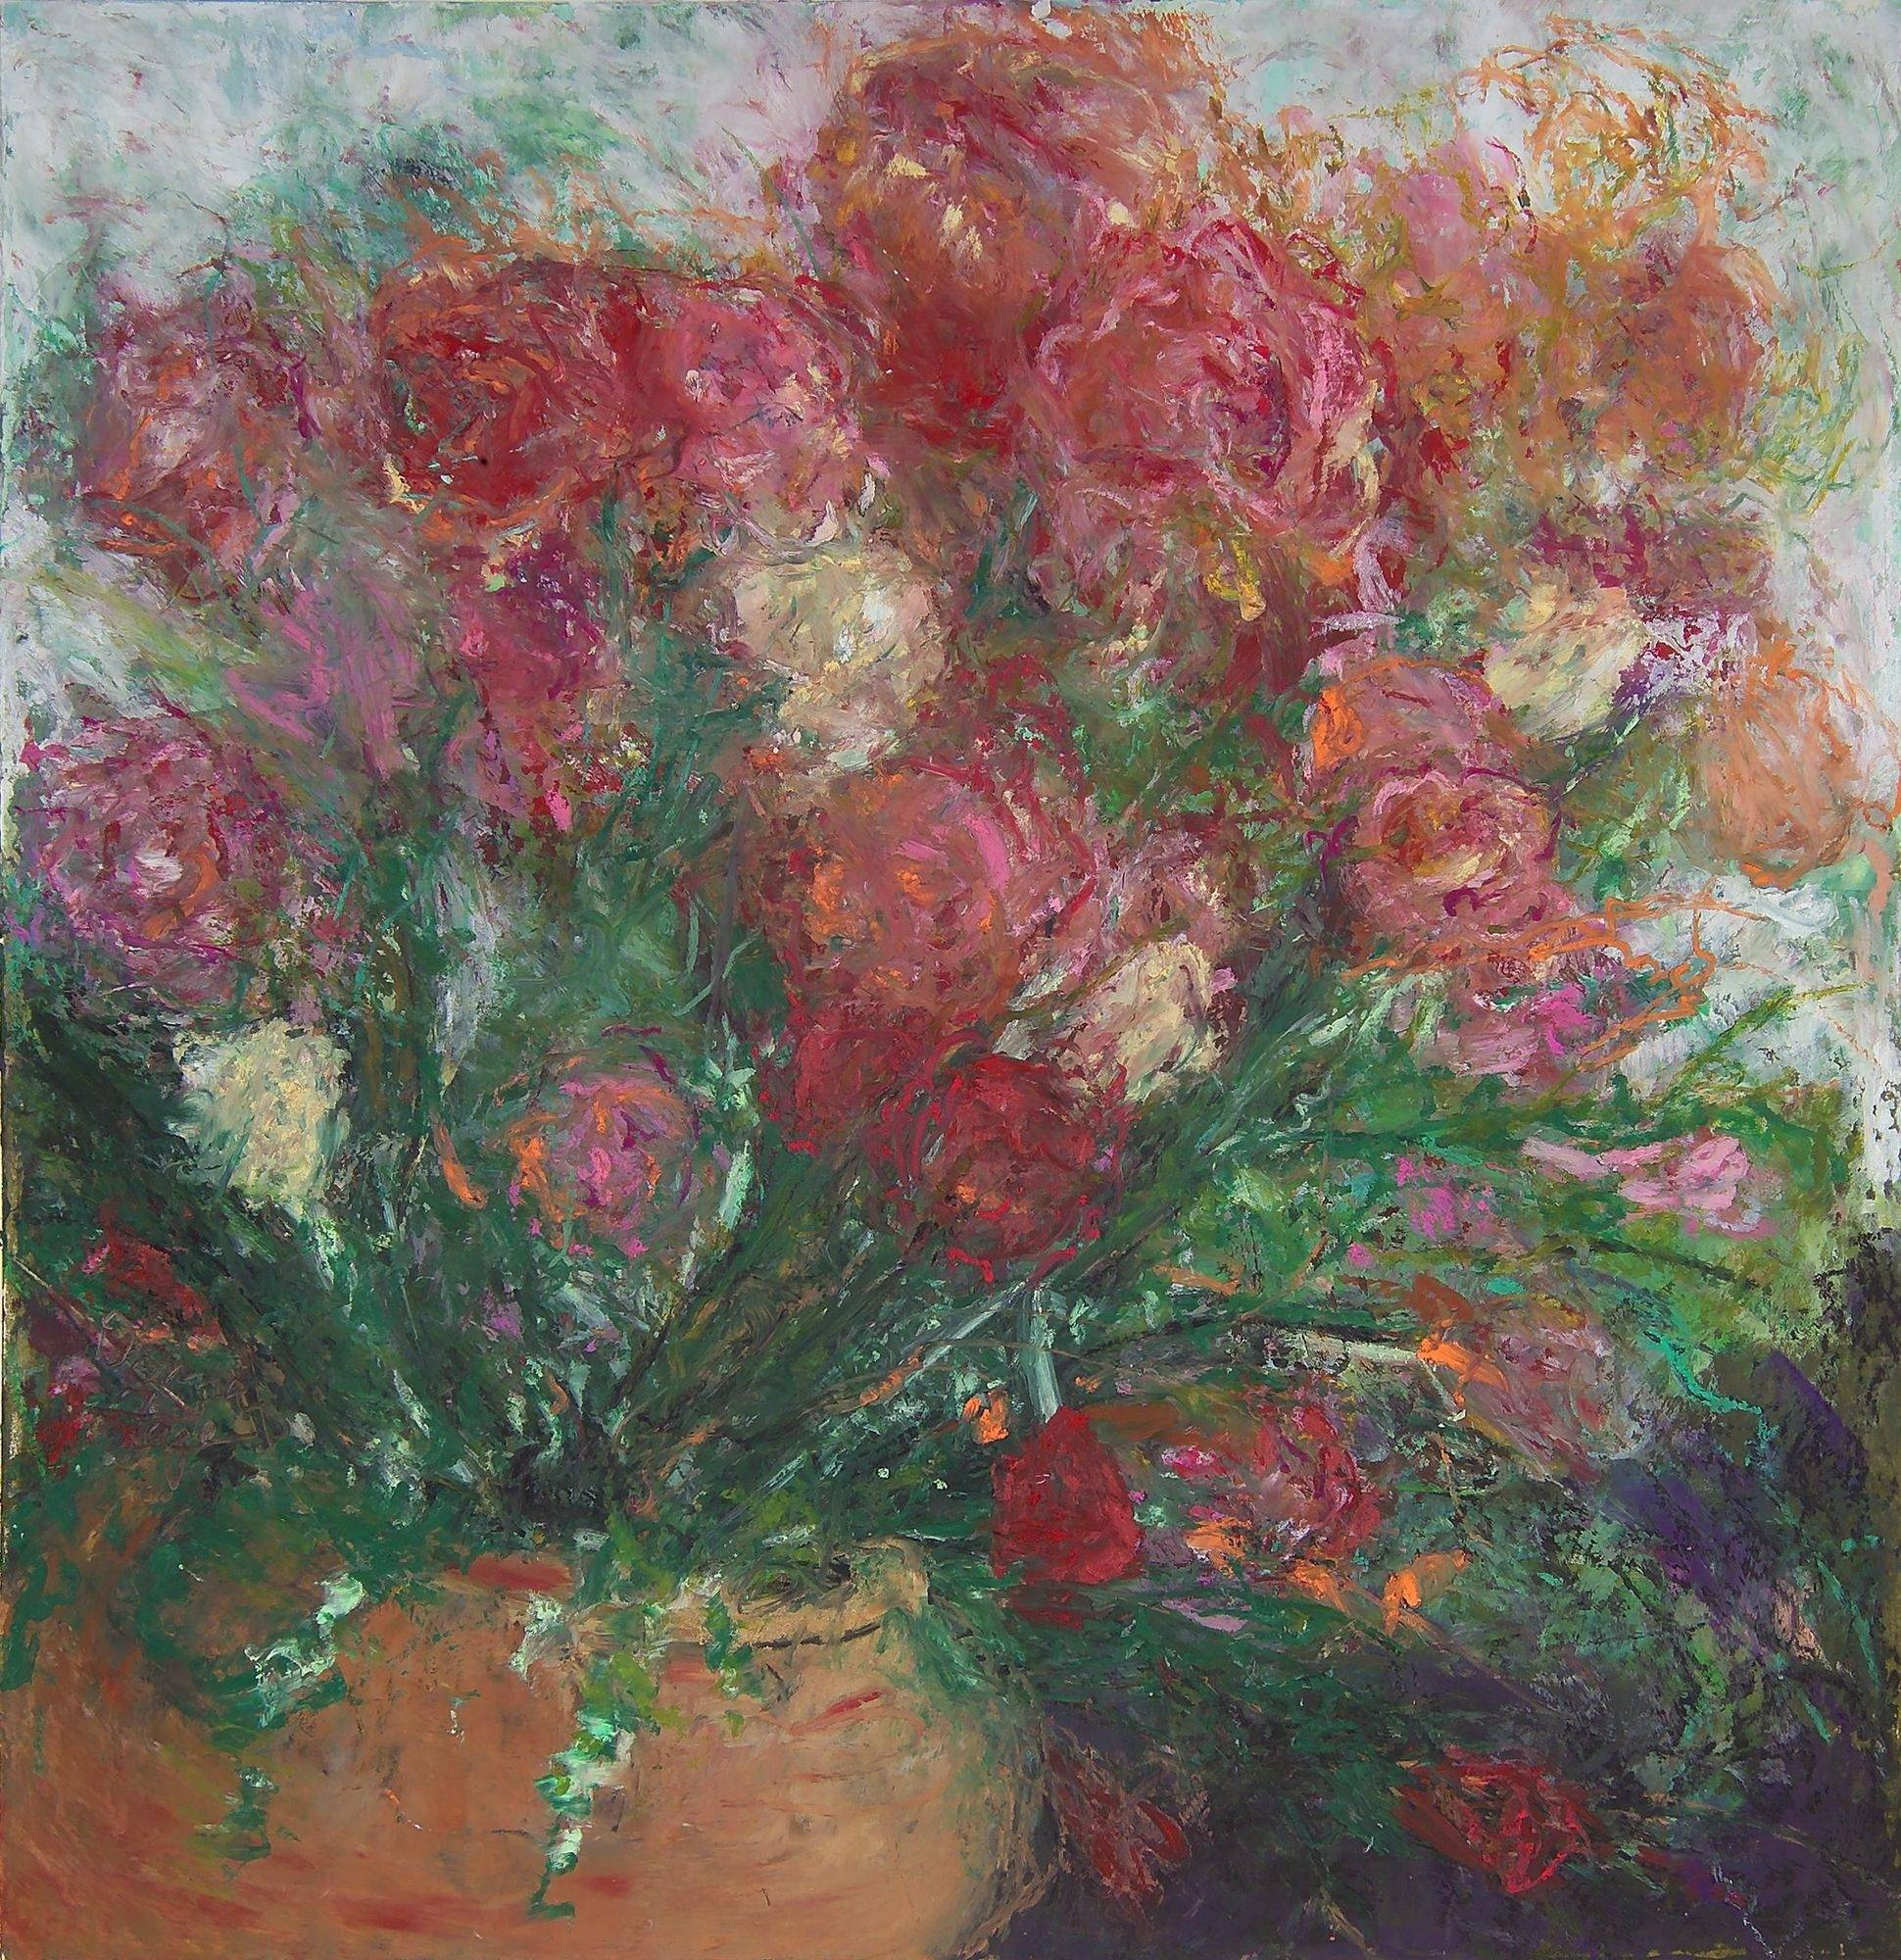 """Rose Fantasy"" by Donna Faye is among the artwork to be featured at The Art of Giving Friday in St. Charles."